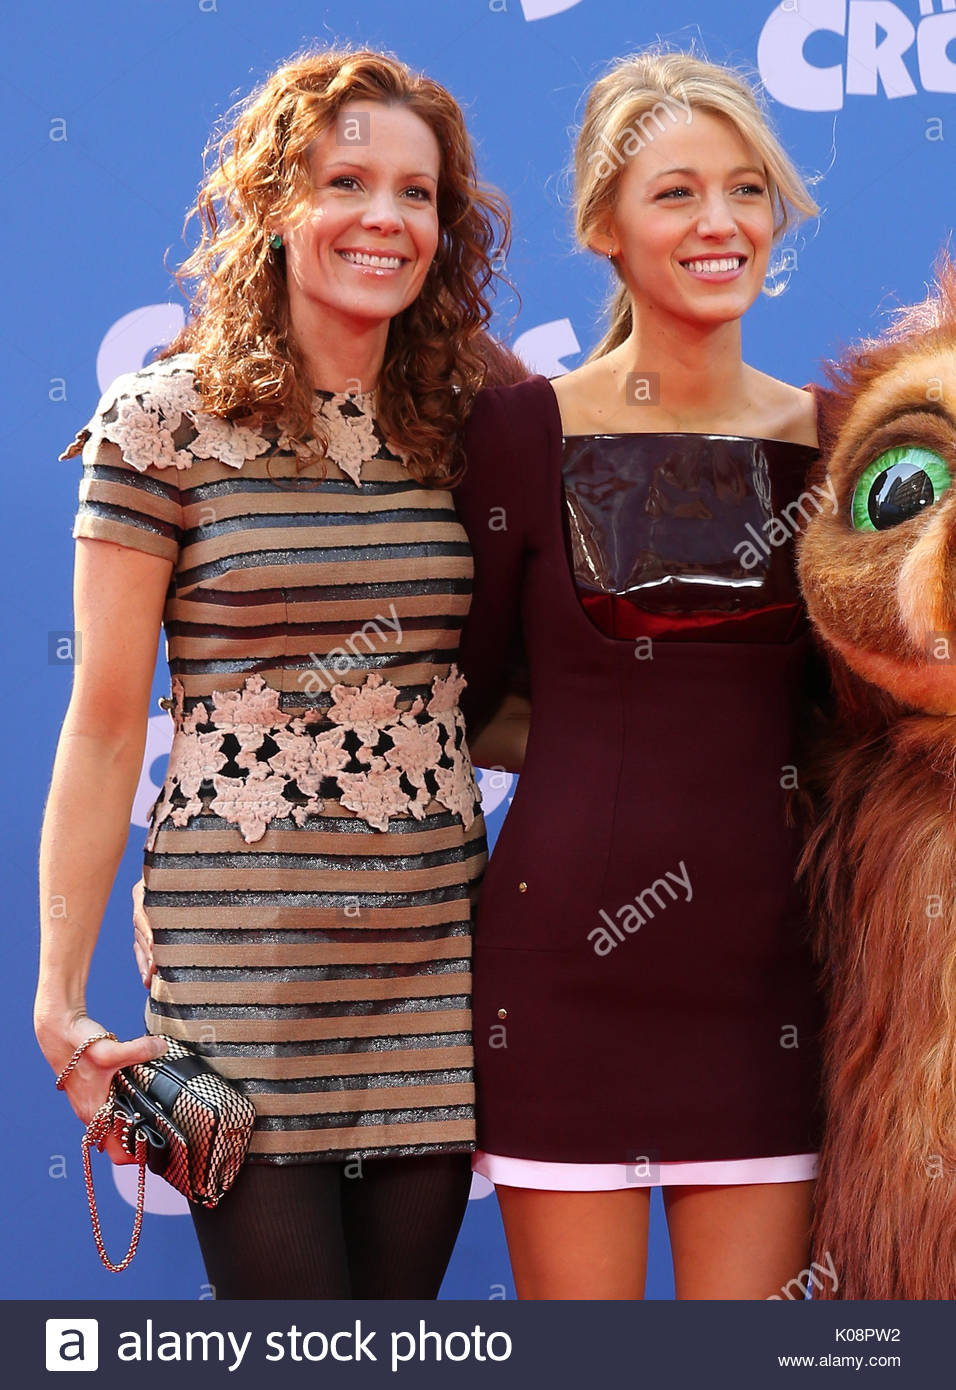 blake lively and robyn lively actress blake lively wearing a